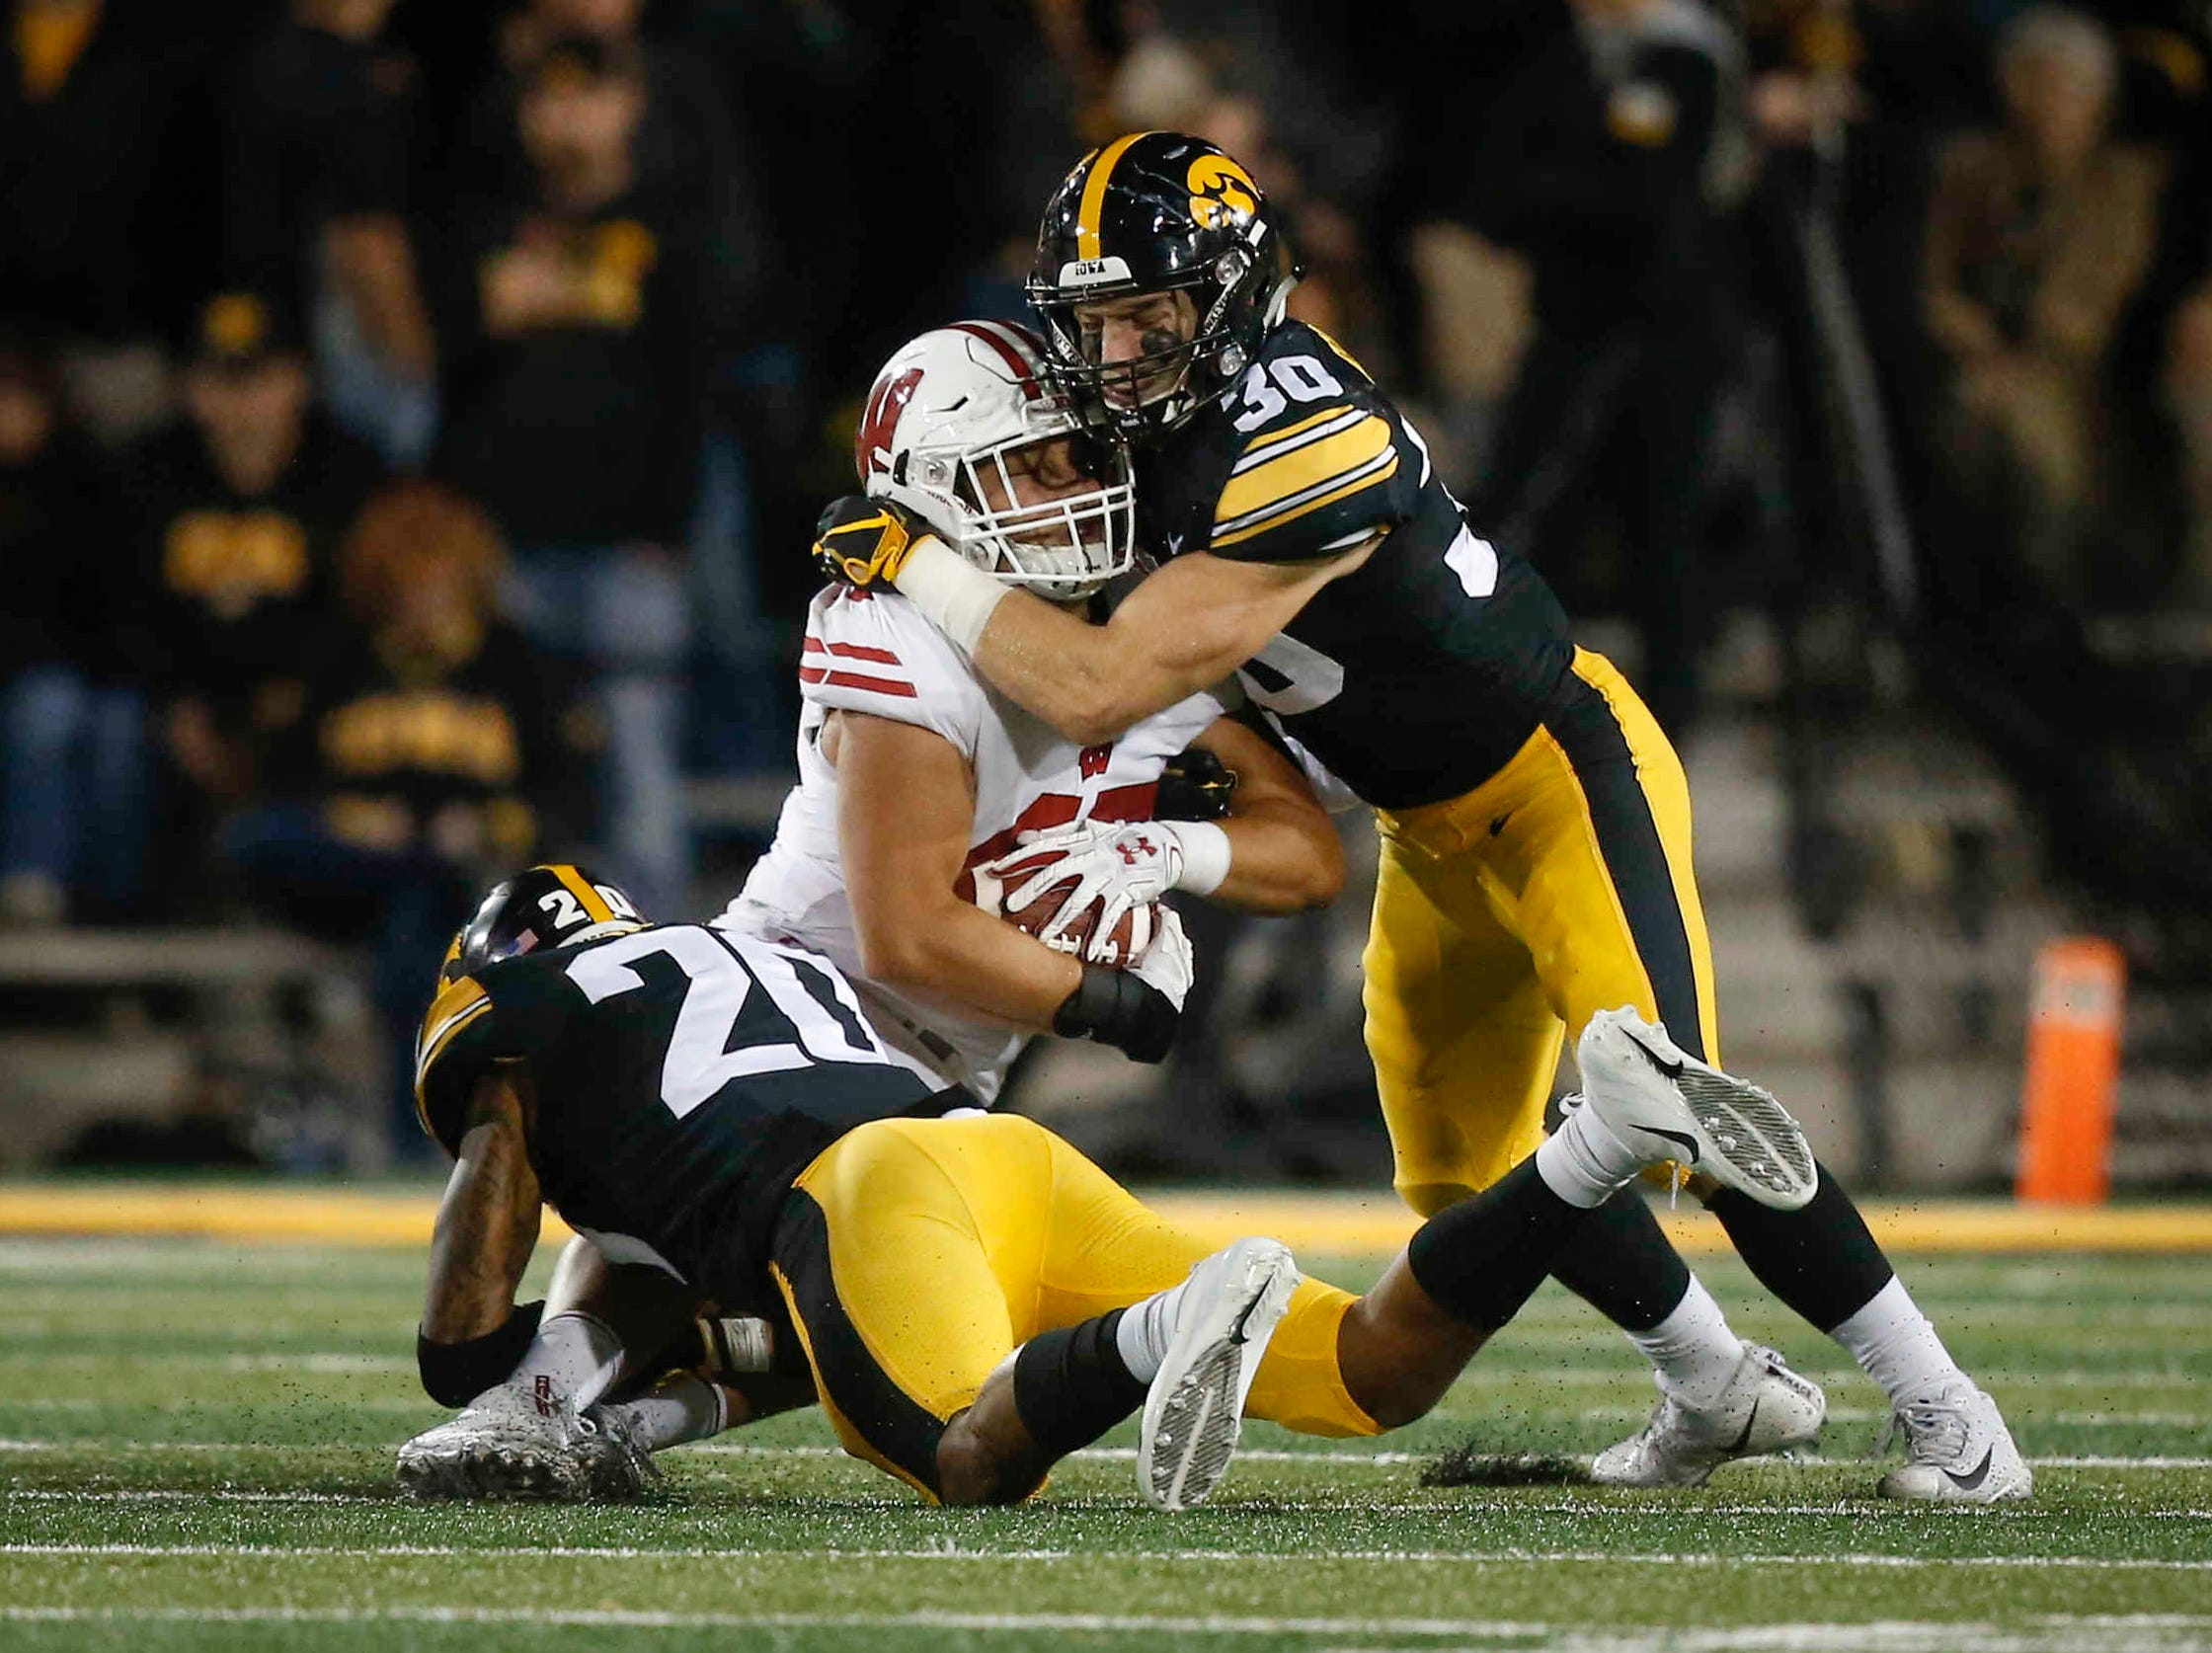 Iowa safety Jake Gervase, right, and cornerback Julius Brents team up to bring down a Wisconsin receiver on Saturday, Sept. 22, 2018, at Kinnick Stadium in Iowa City.